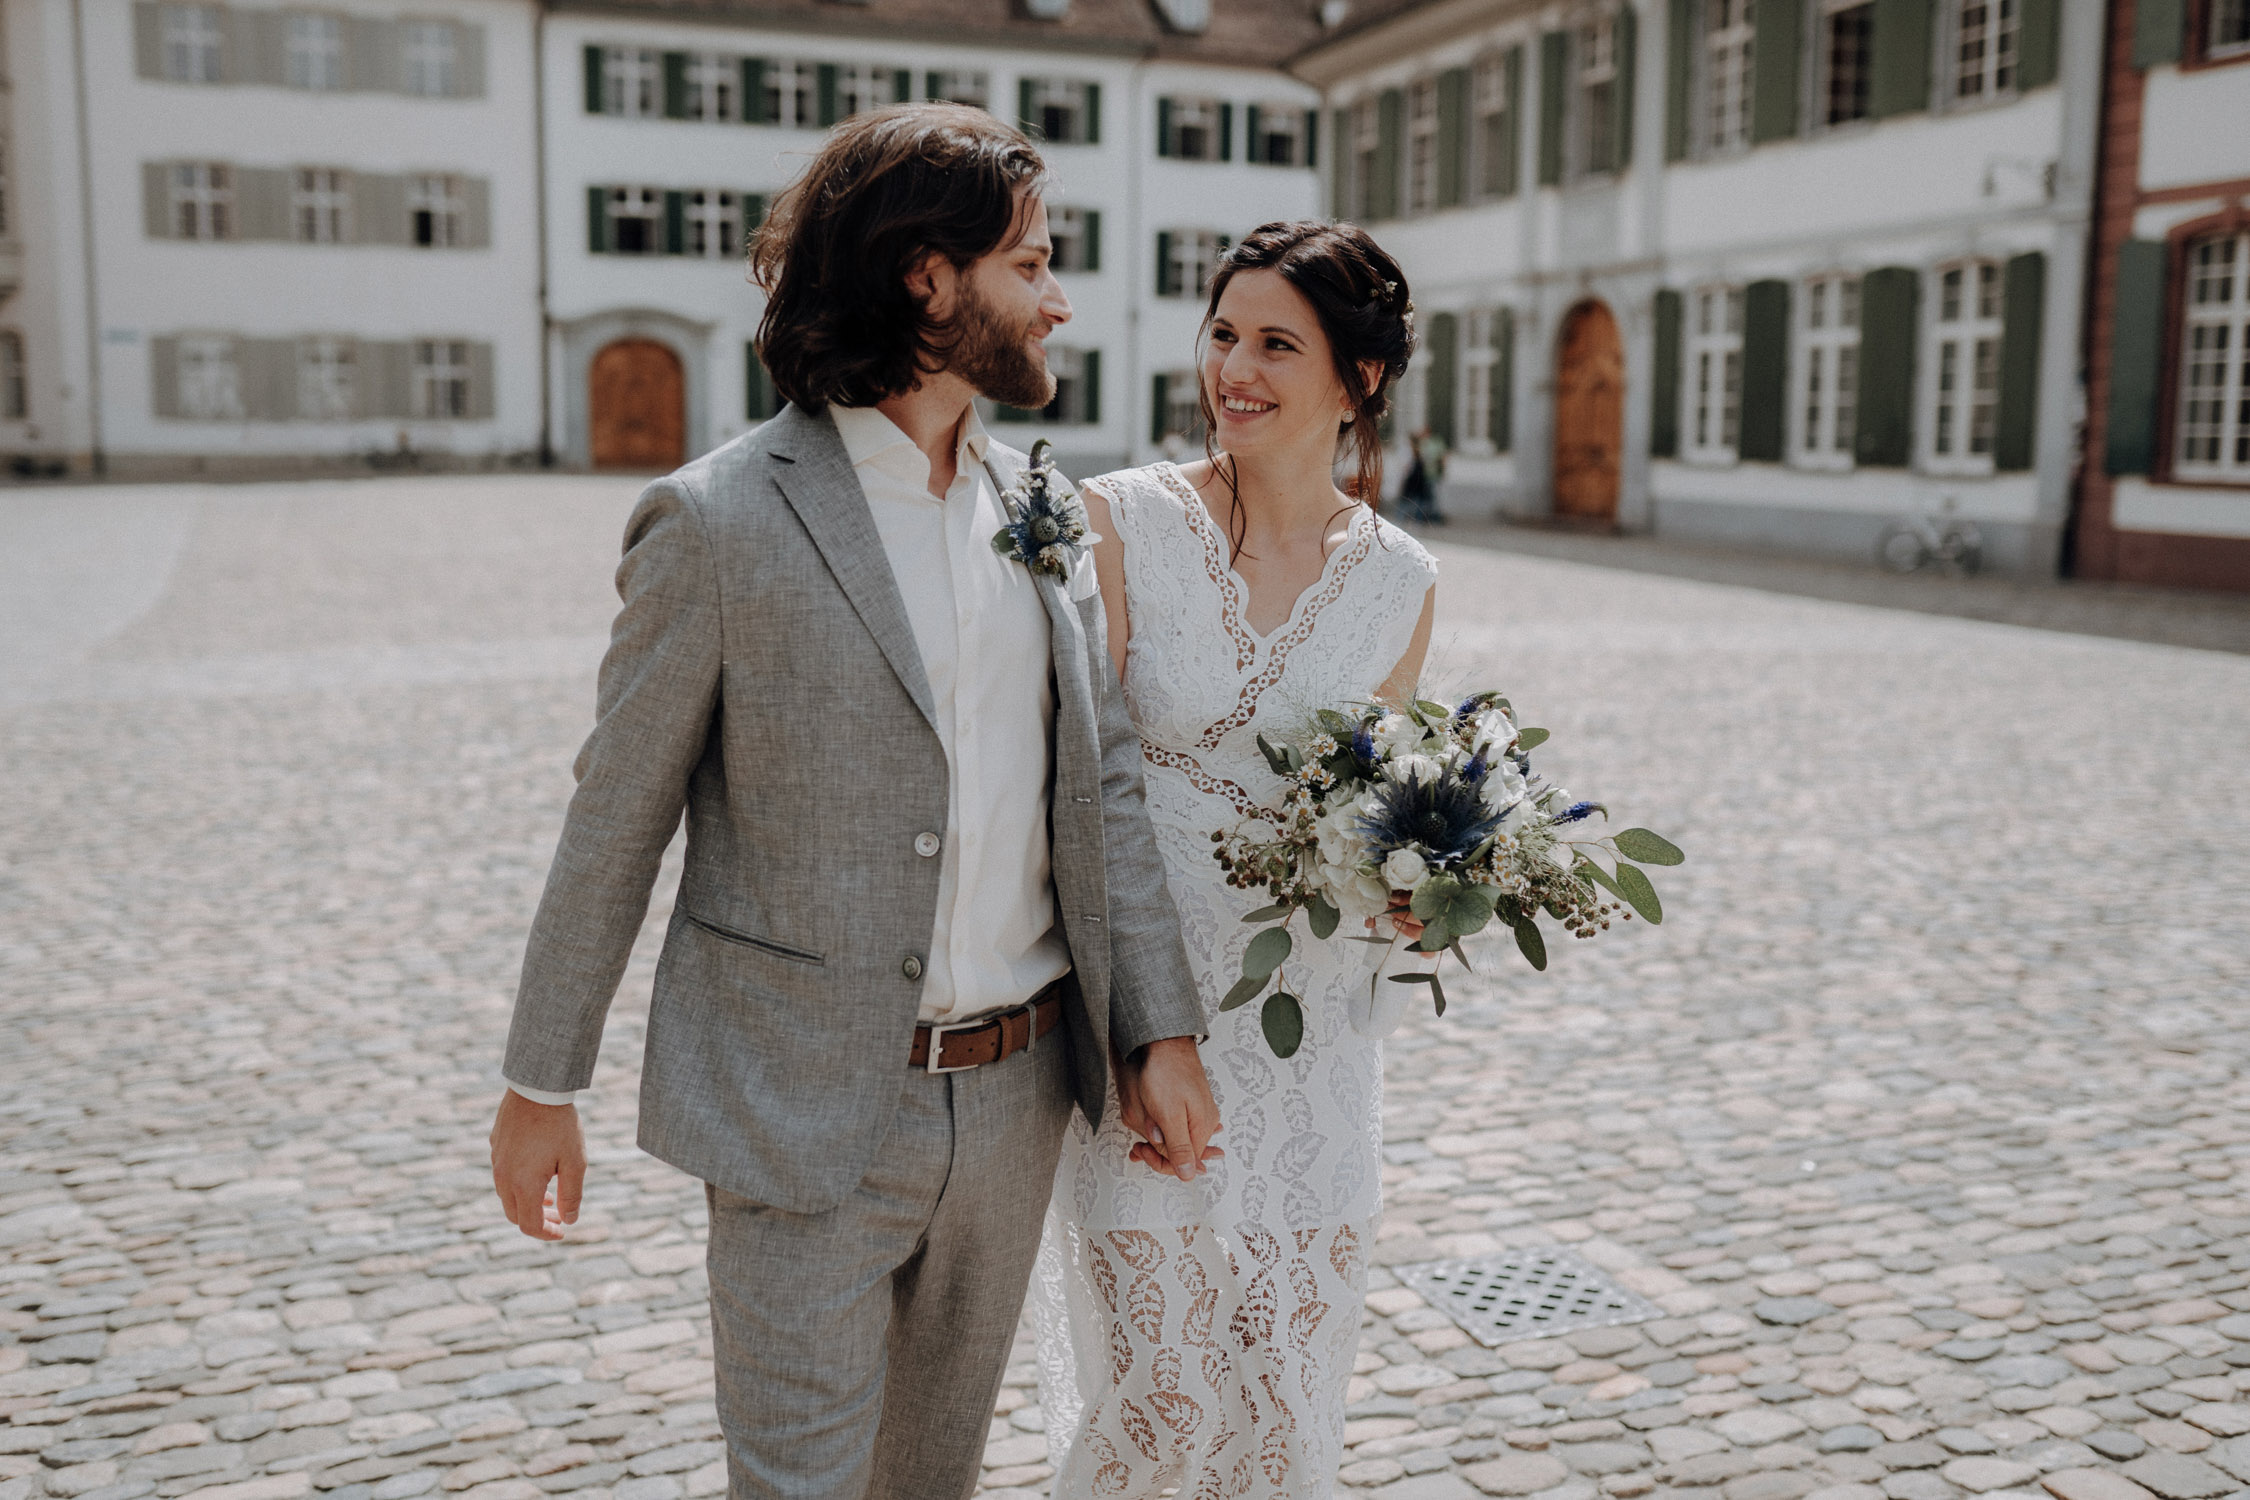 Wedding photographer switzerland basel natural unposed civil wedding old town Basel Minster